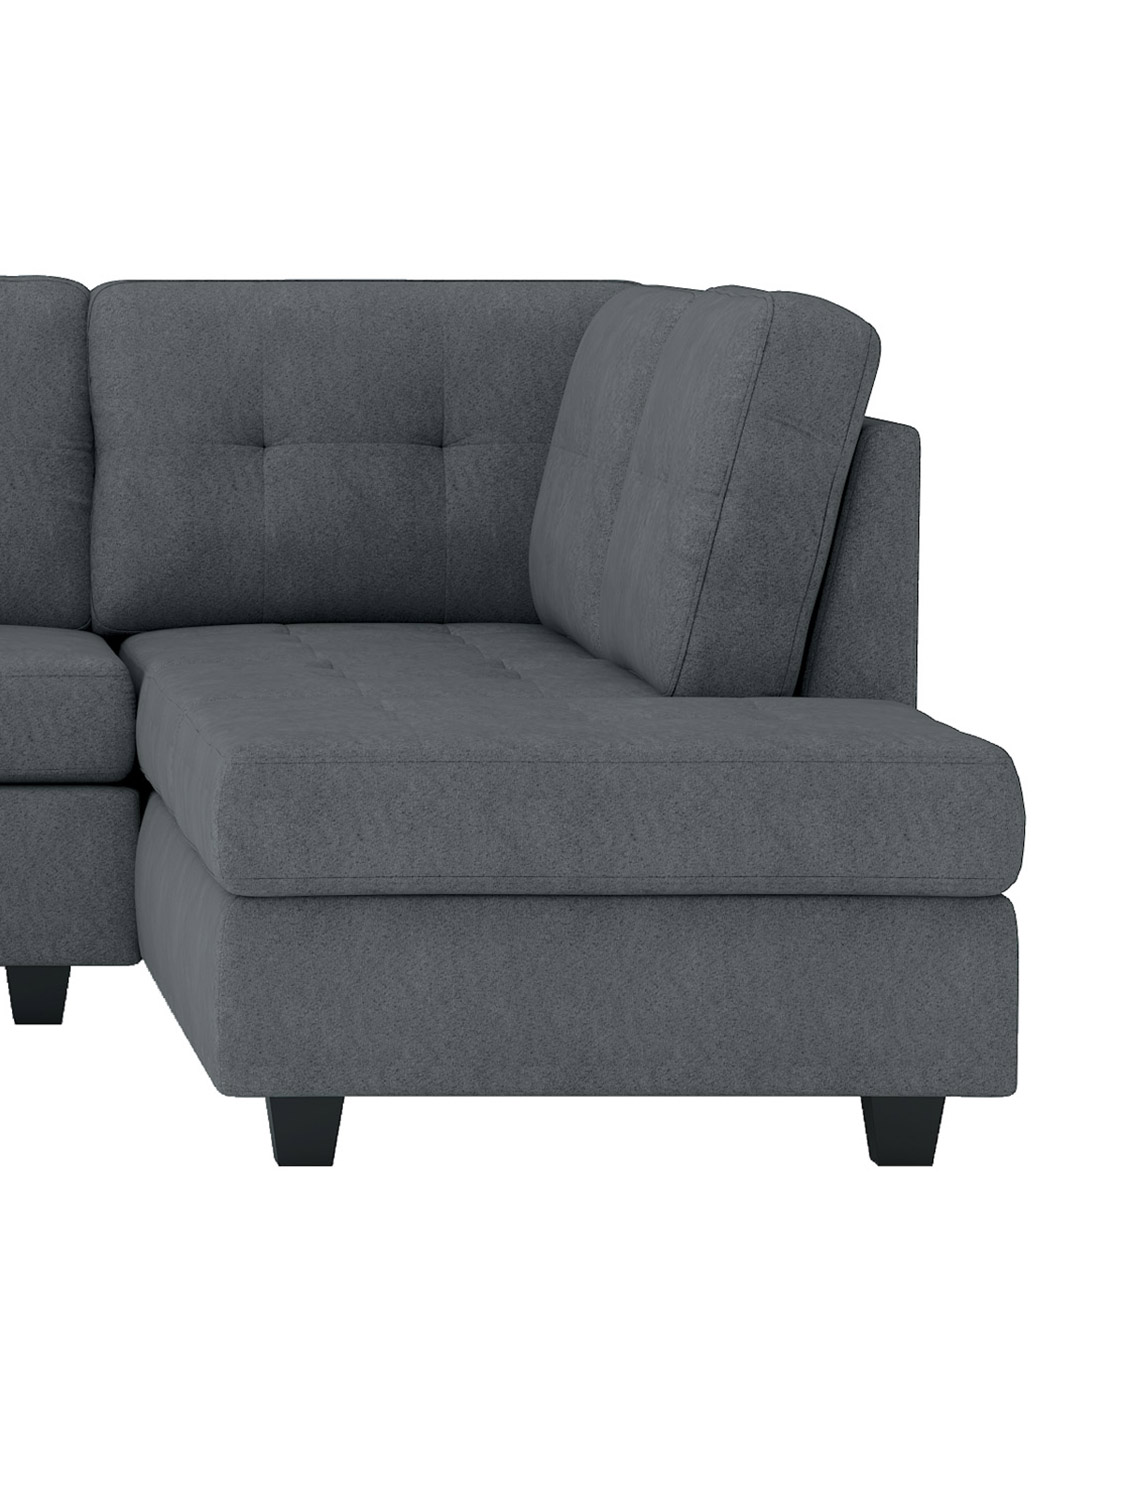 Homelegance Maston Reversible Chaise, Left/Right Unit - Dark gray